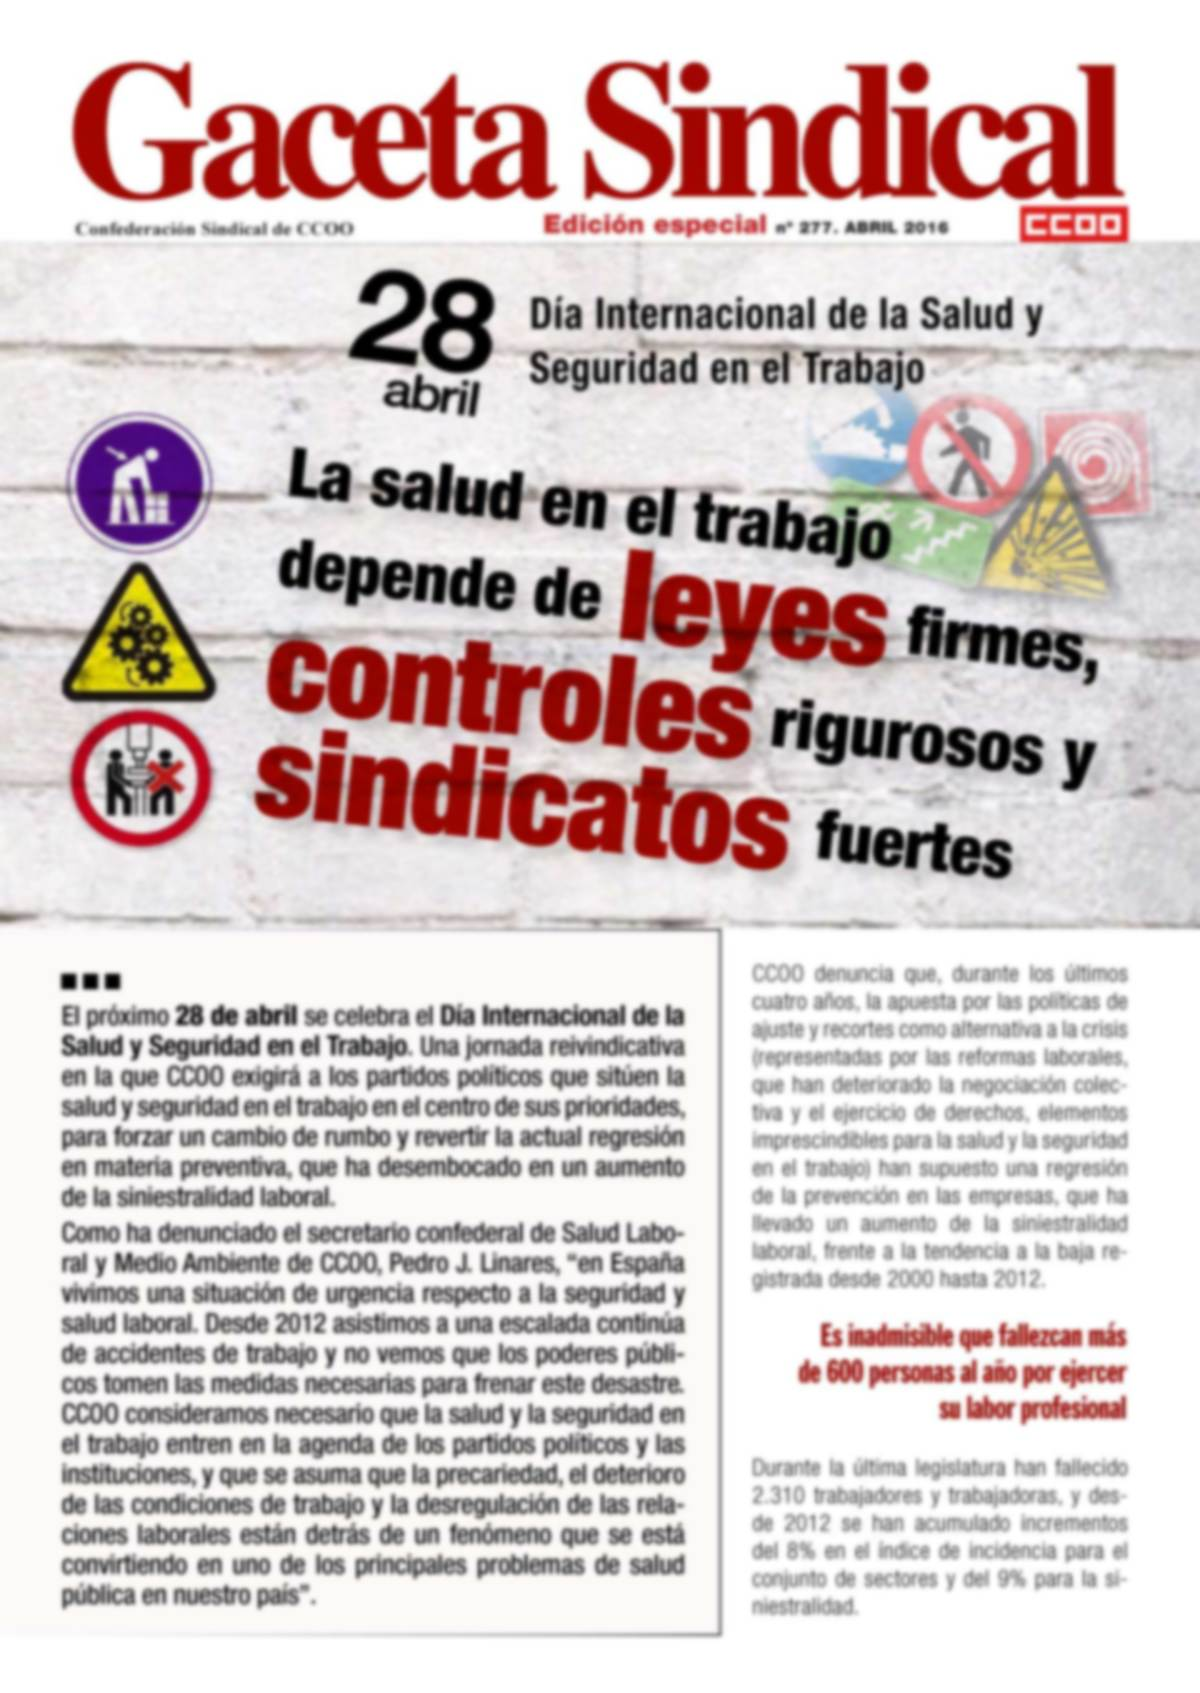 Gaceta Sindical 28 de abril